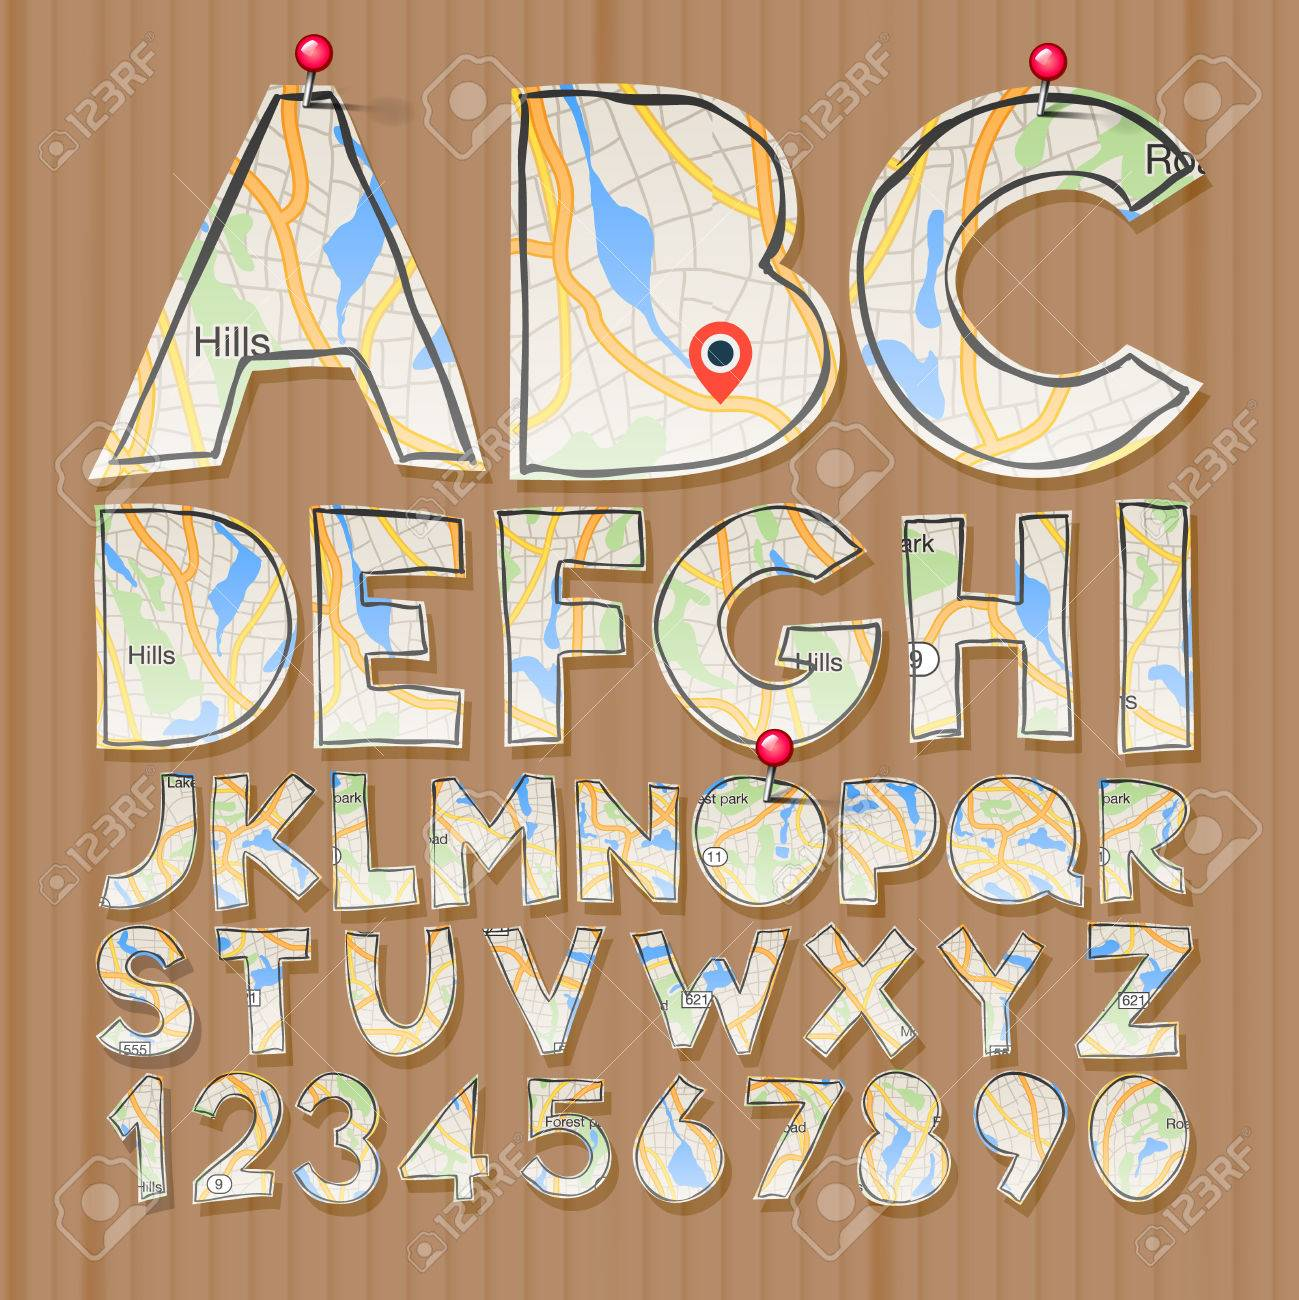 Alphabet And Numbers Paper Craft Design Cut Out By Scissors